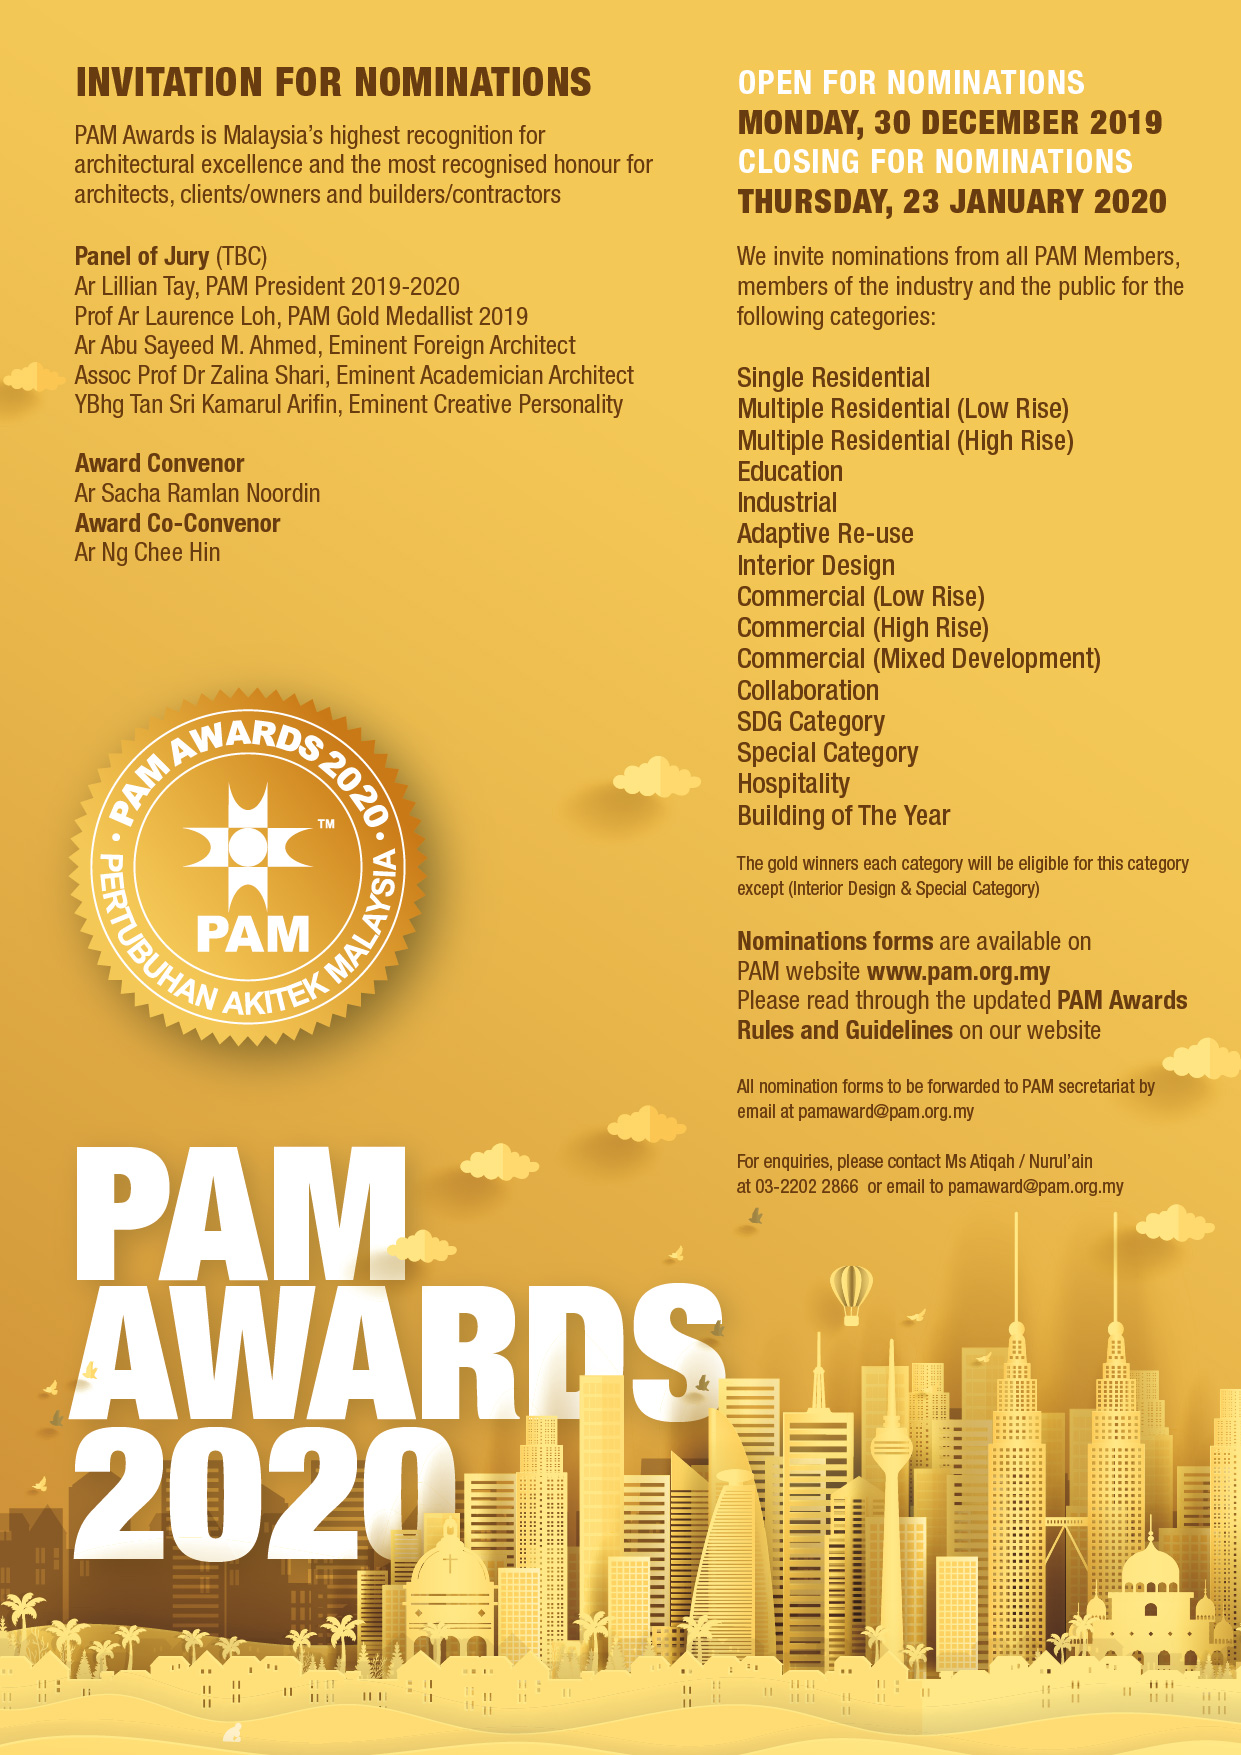 PAM awards 2020